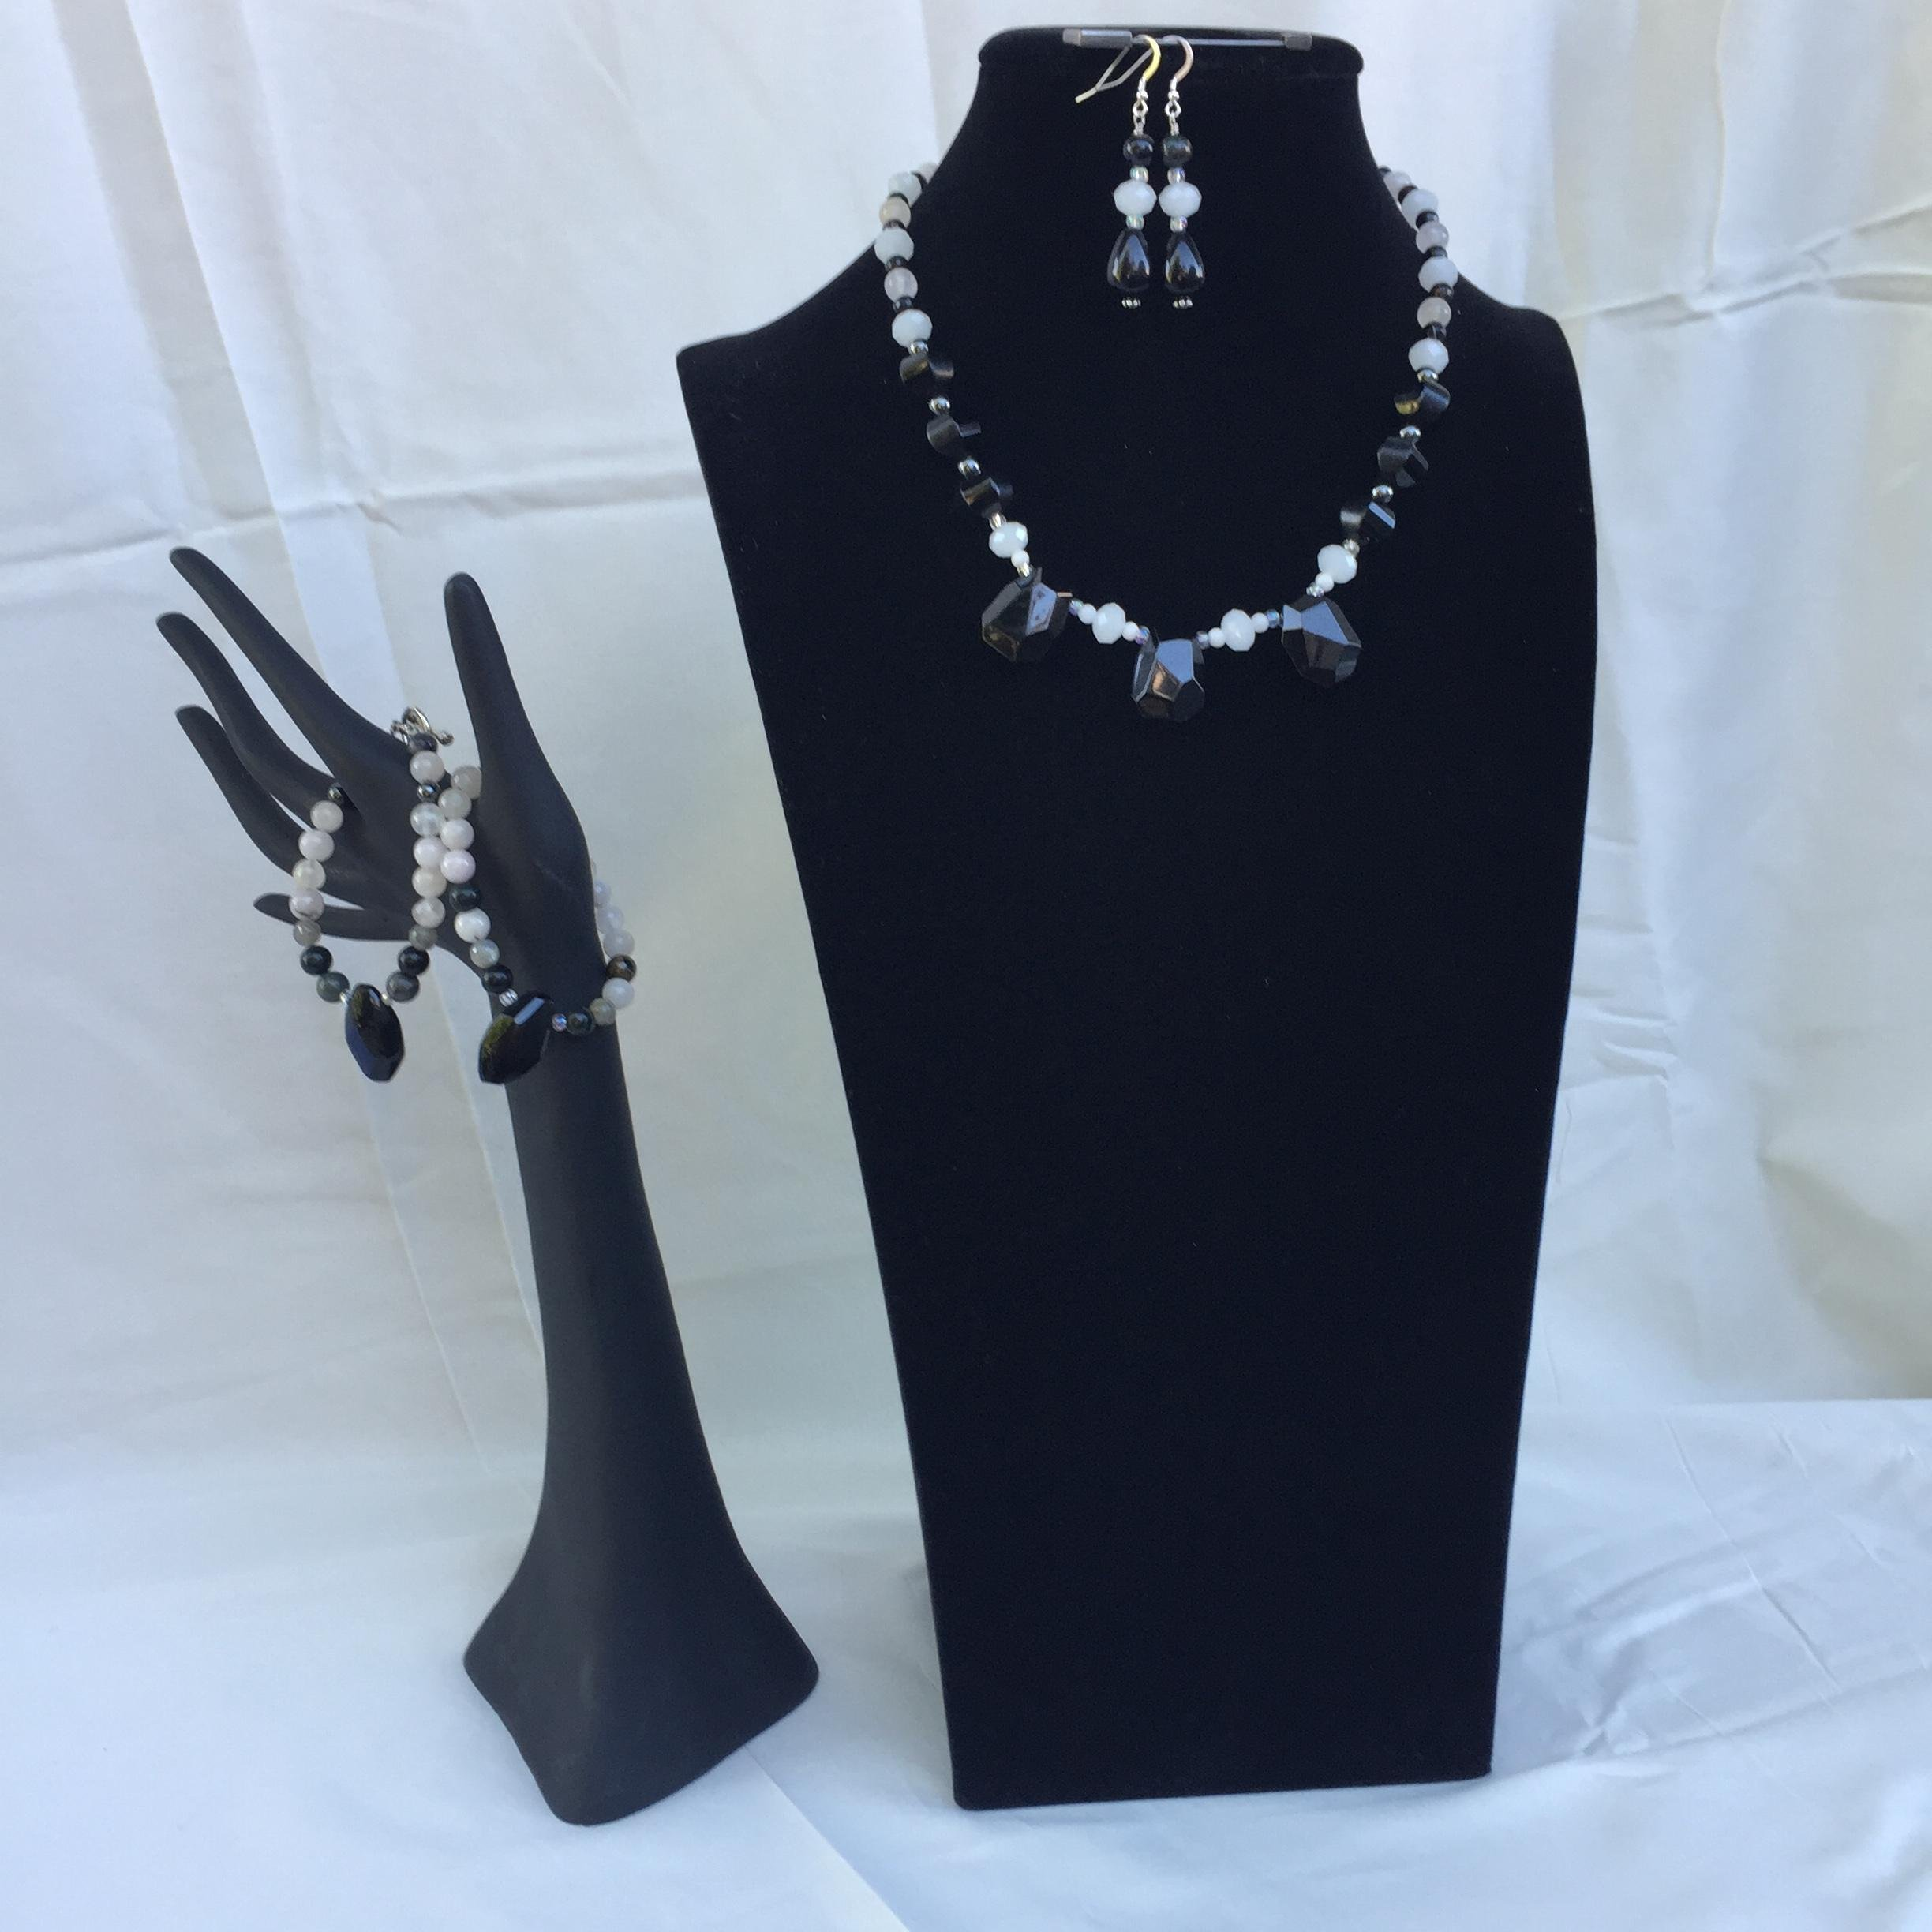 Stunning handmade jewelry set with a necklace, two bracelets and matching dangle earrings. Black and white mixed gemstones. One of a kind